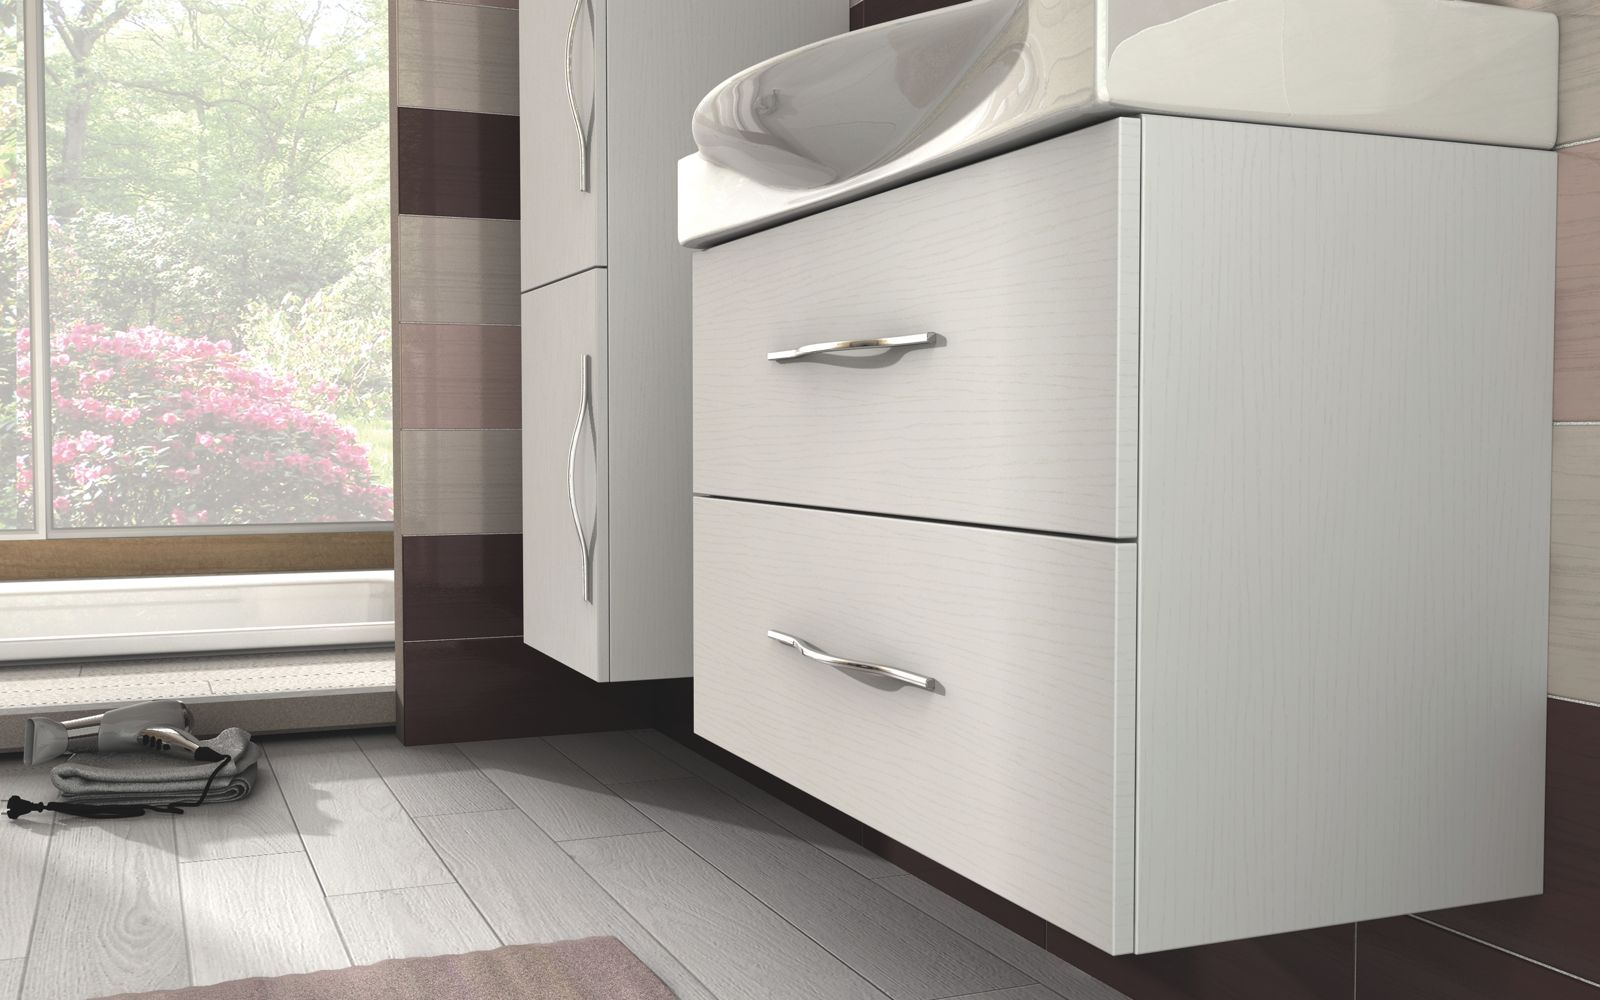 Mobile Bagno New York bathroom vanity 84 + 45 cm, available in 4 colours (also white), news model